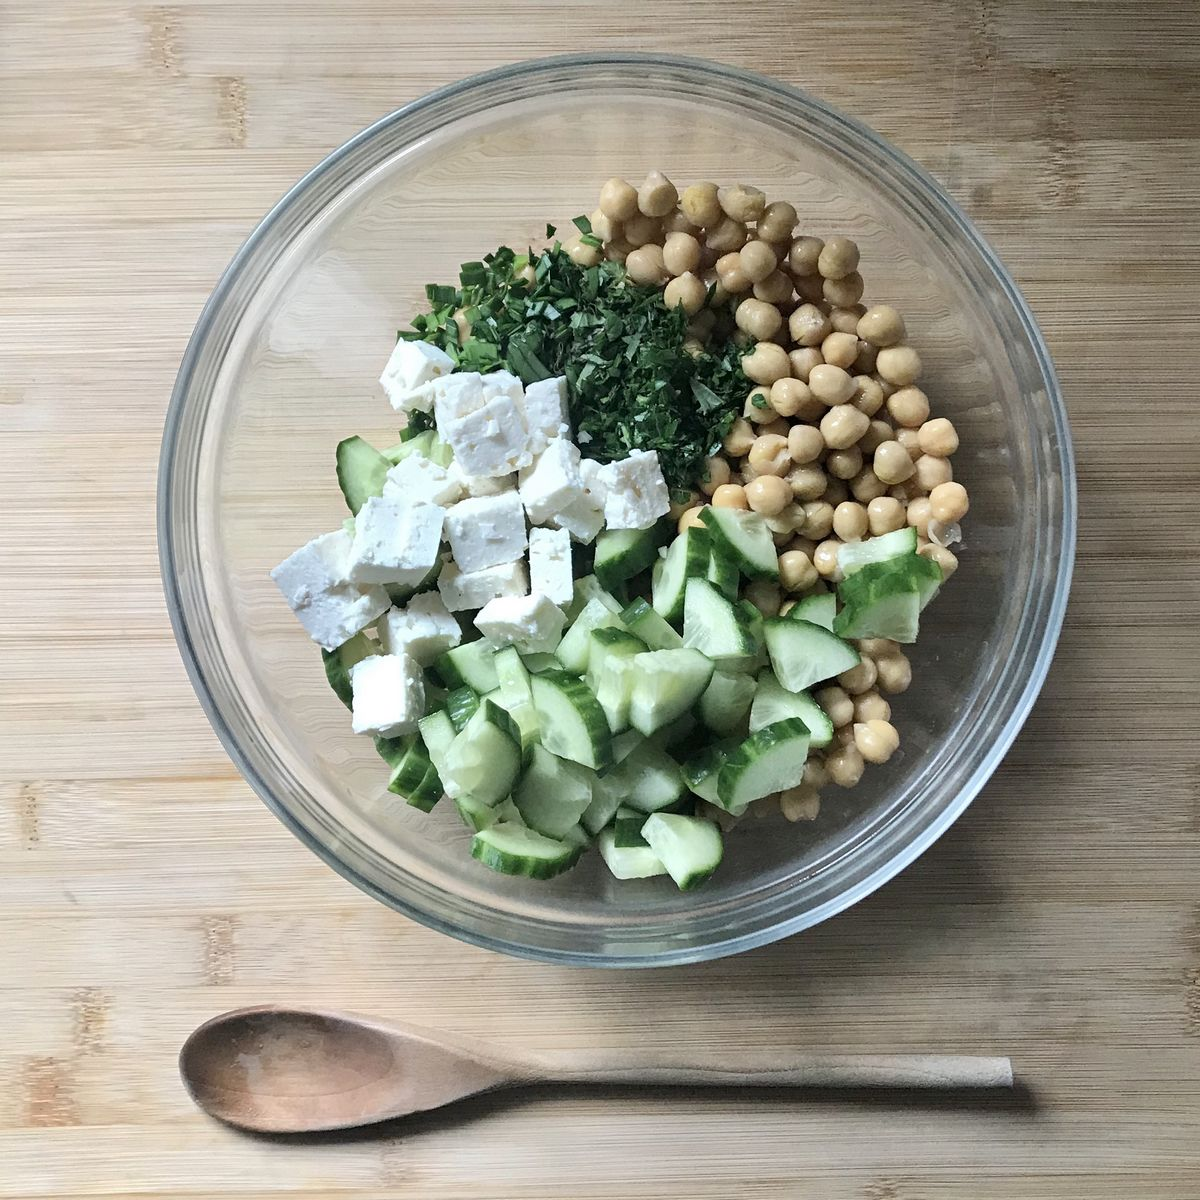 The salad ingredients in a large bowl.